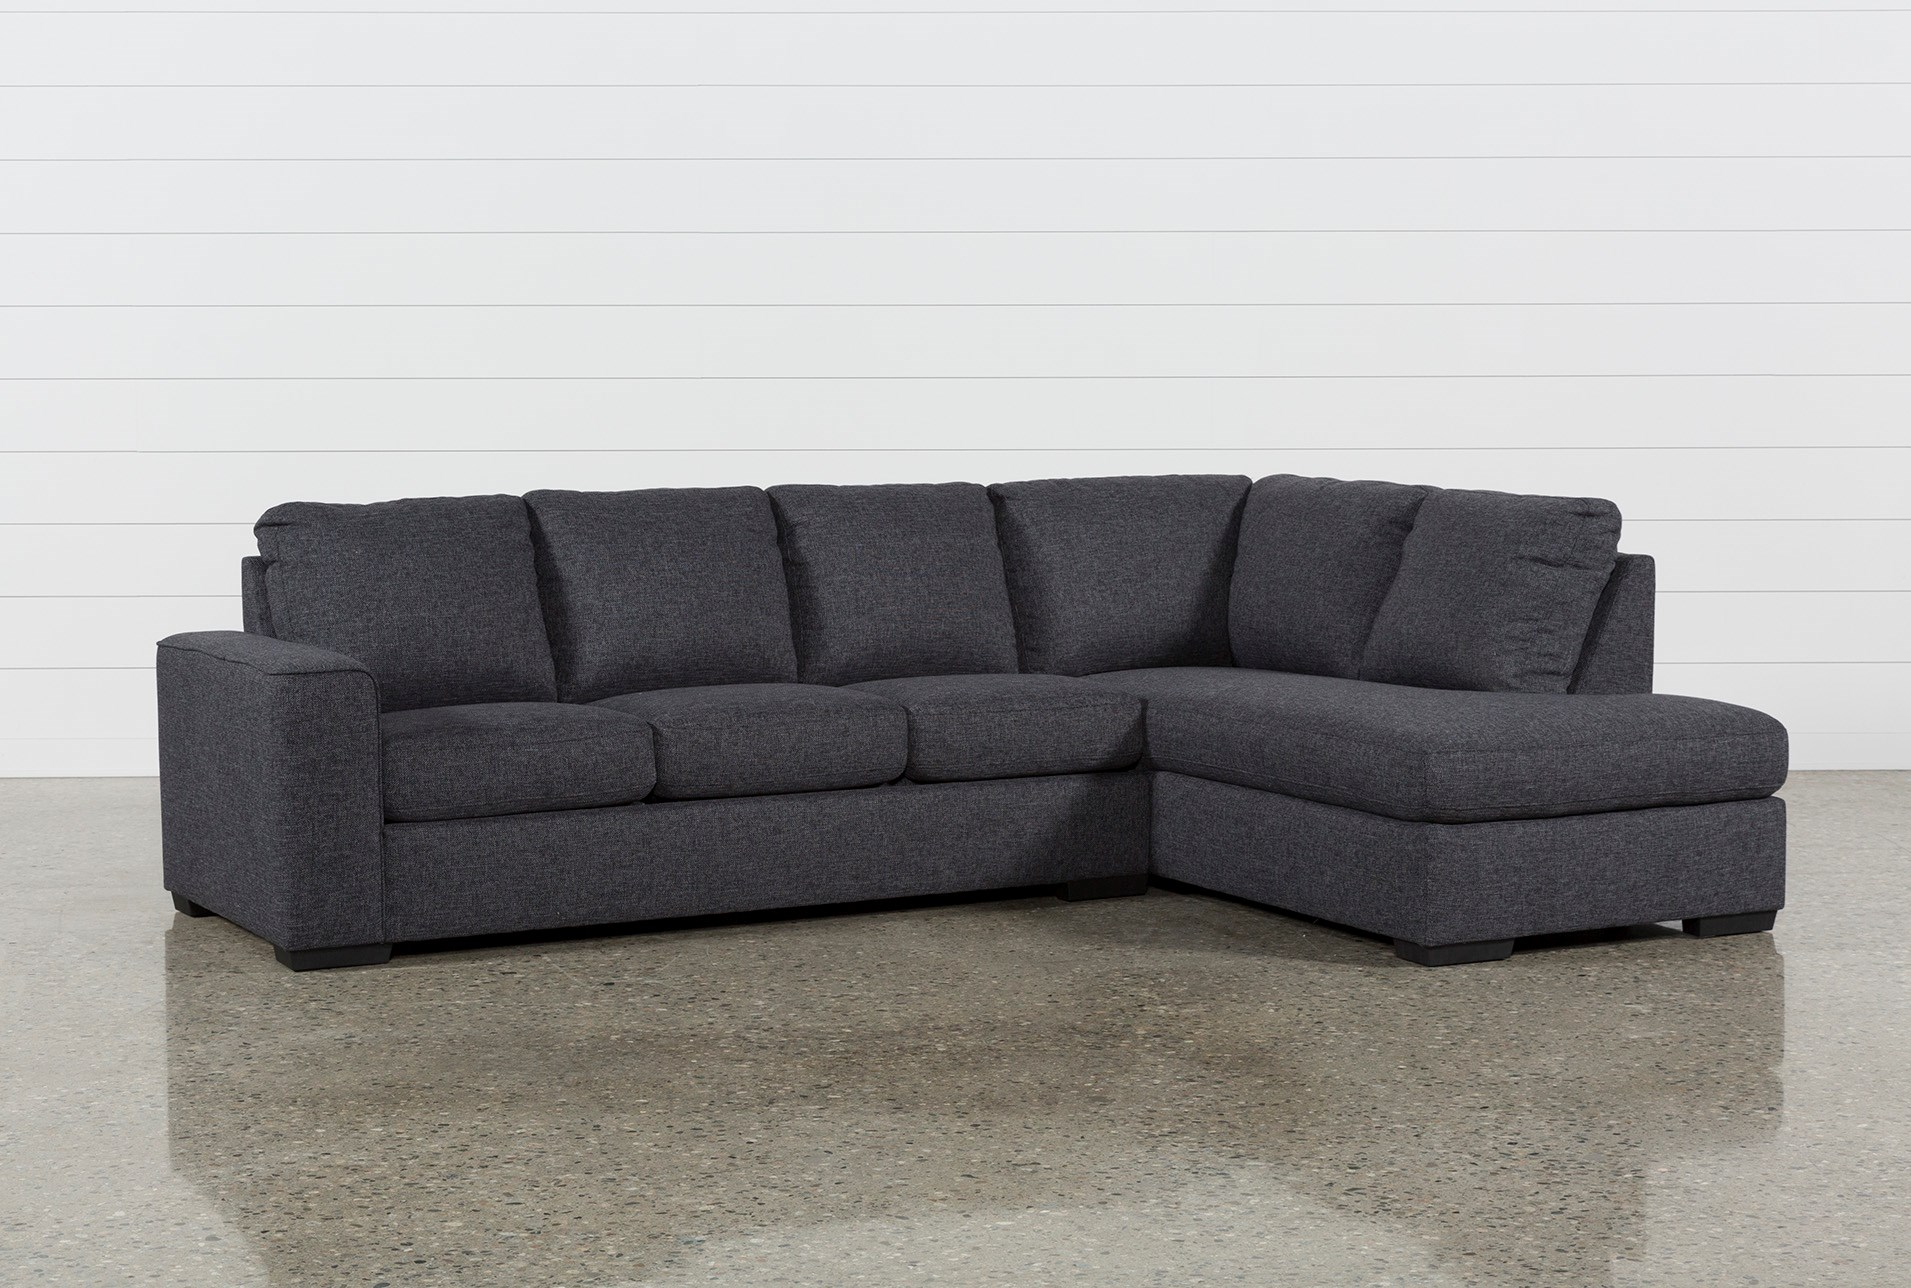 Sectional Sofa Sets Large Small Couches Grey – Locsbyhelenelorasa With Mcdade Graphite Sofa Chairs (Image 19 of 25)